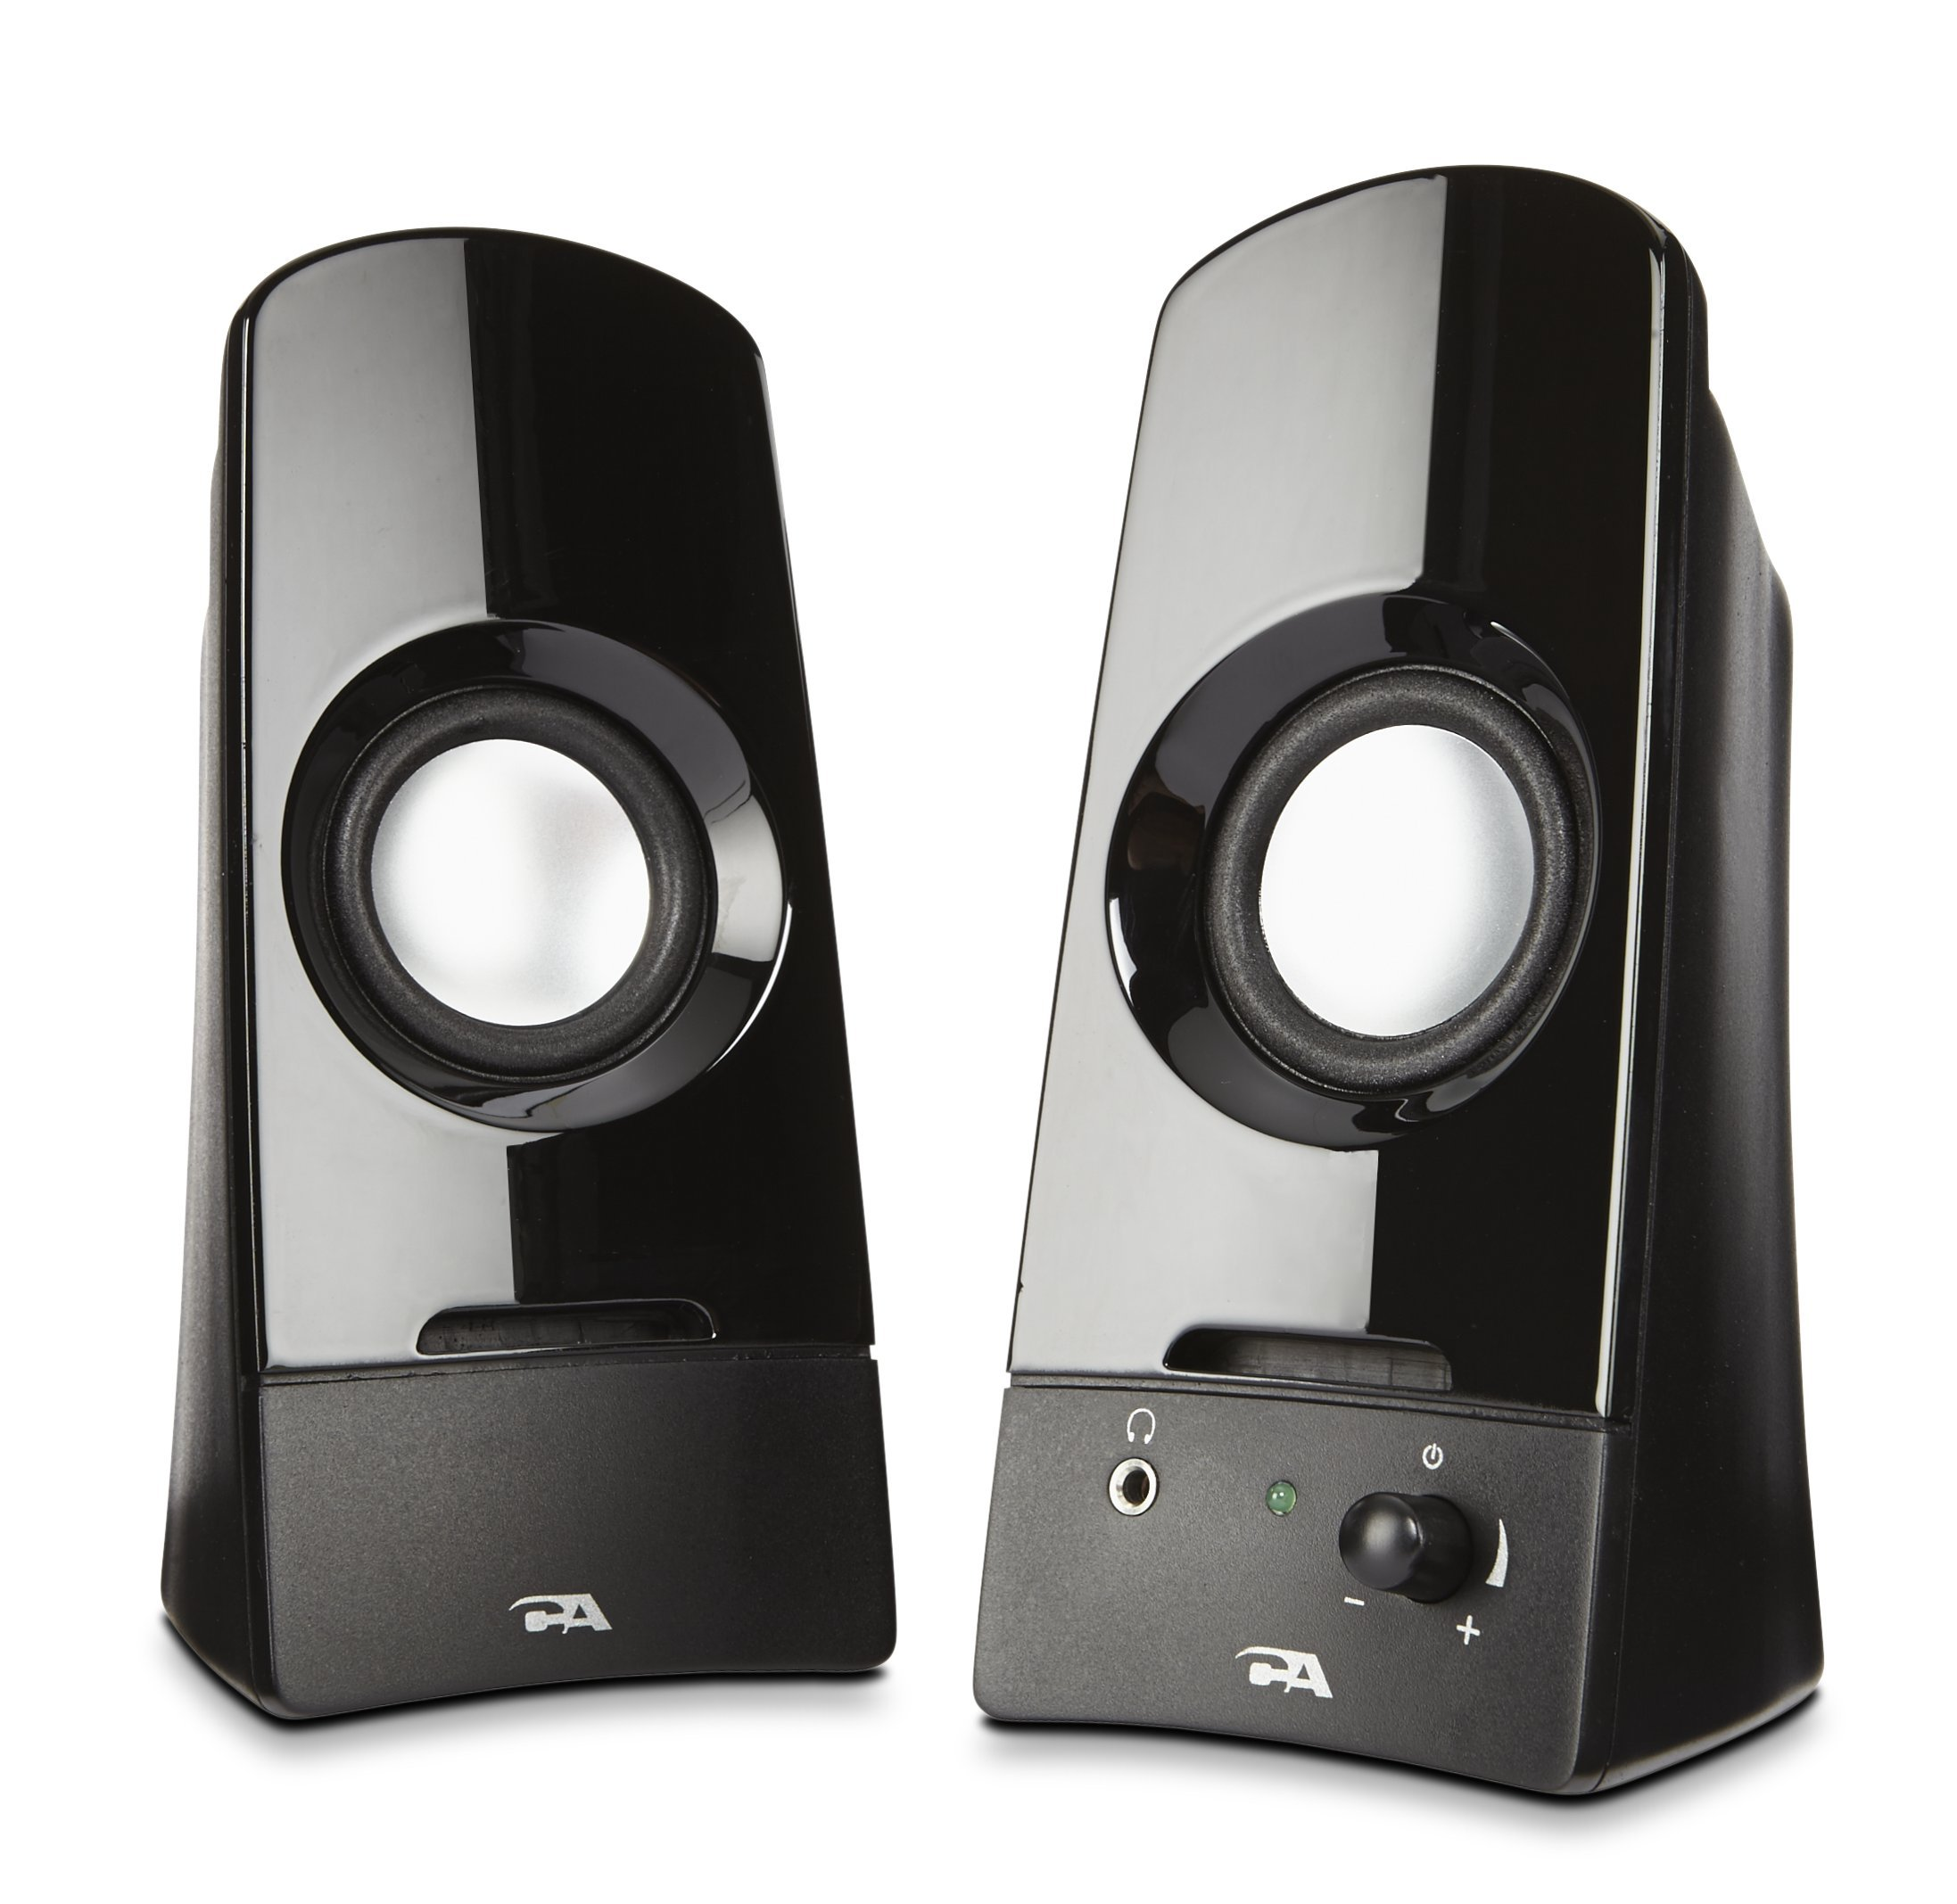 Computer speakers, a powerful 2.0 desktop speaker system from Cyber Acoustics  (CA-2050)